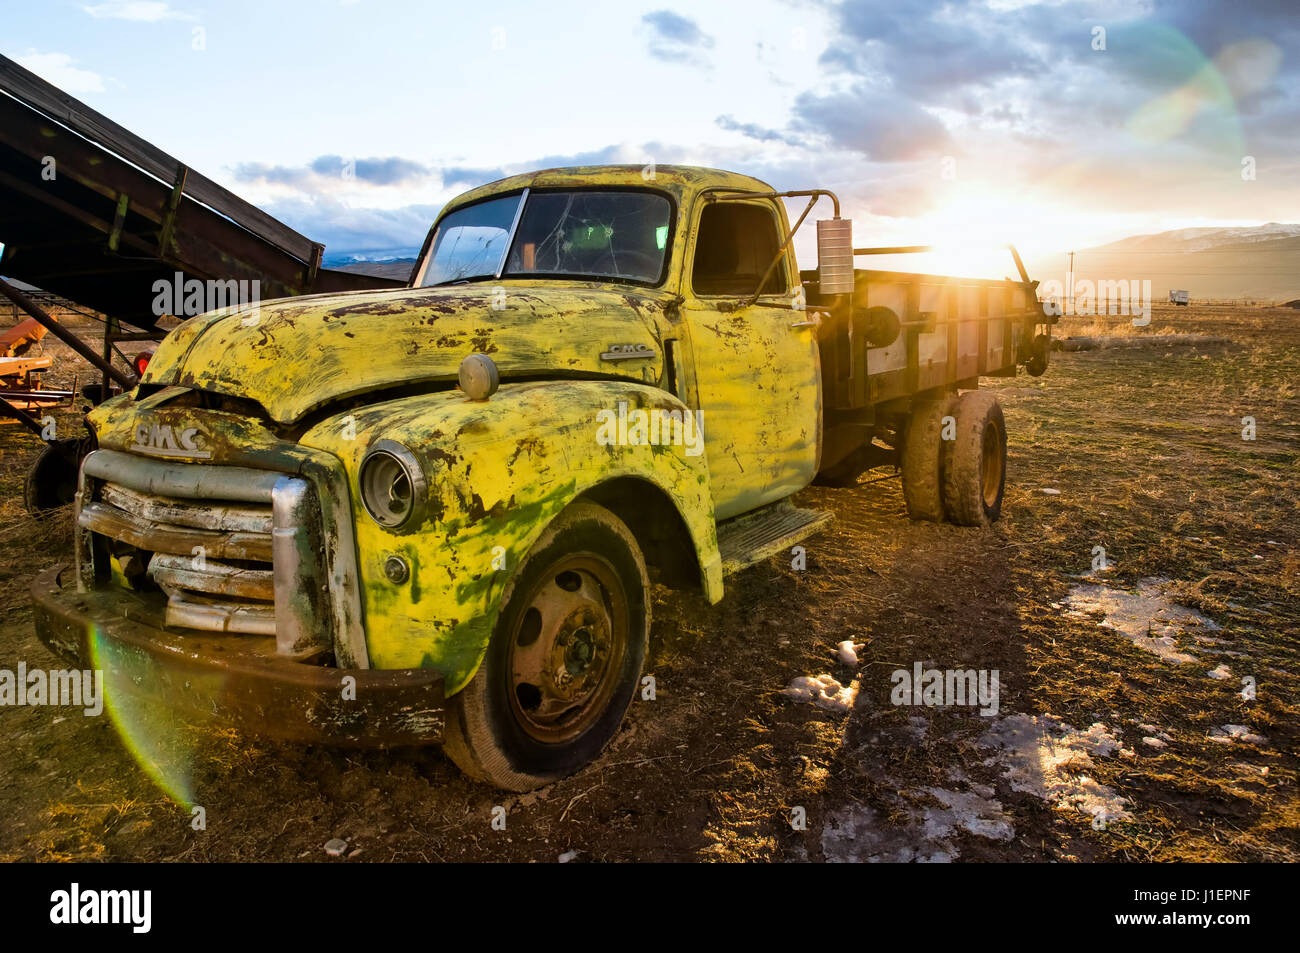 Vintage GMC truck. Stock Photo